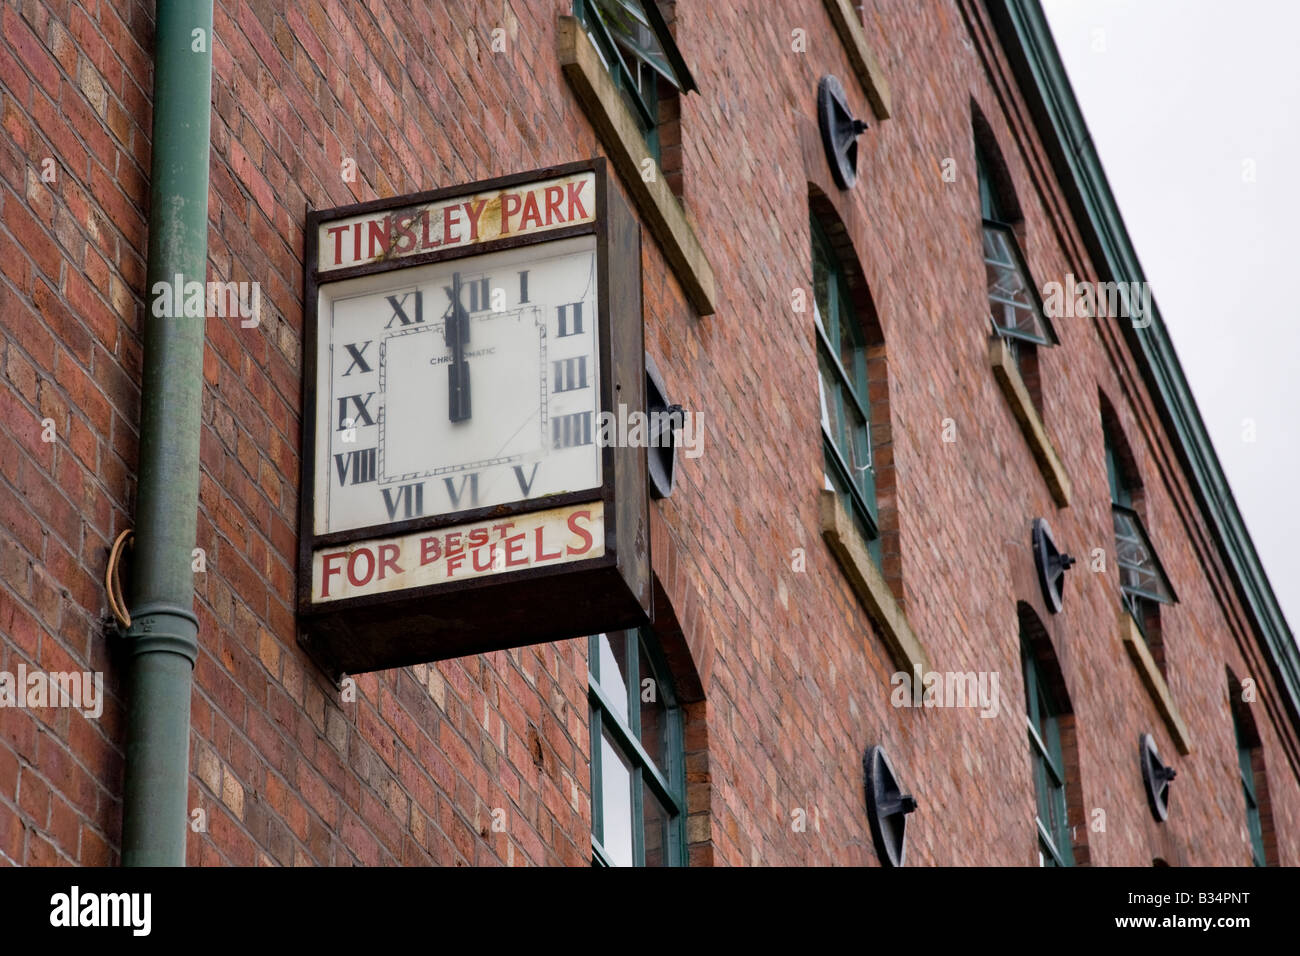 Clock on building Victoria Quay Sheffield, South Yorkshire - Stock Image